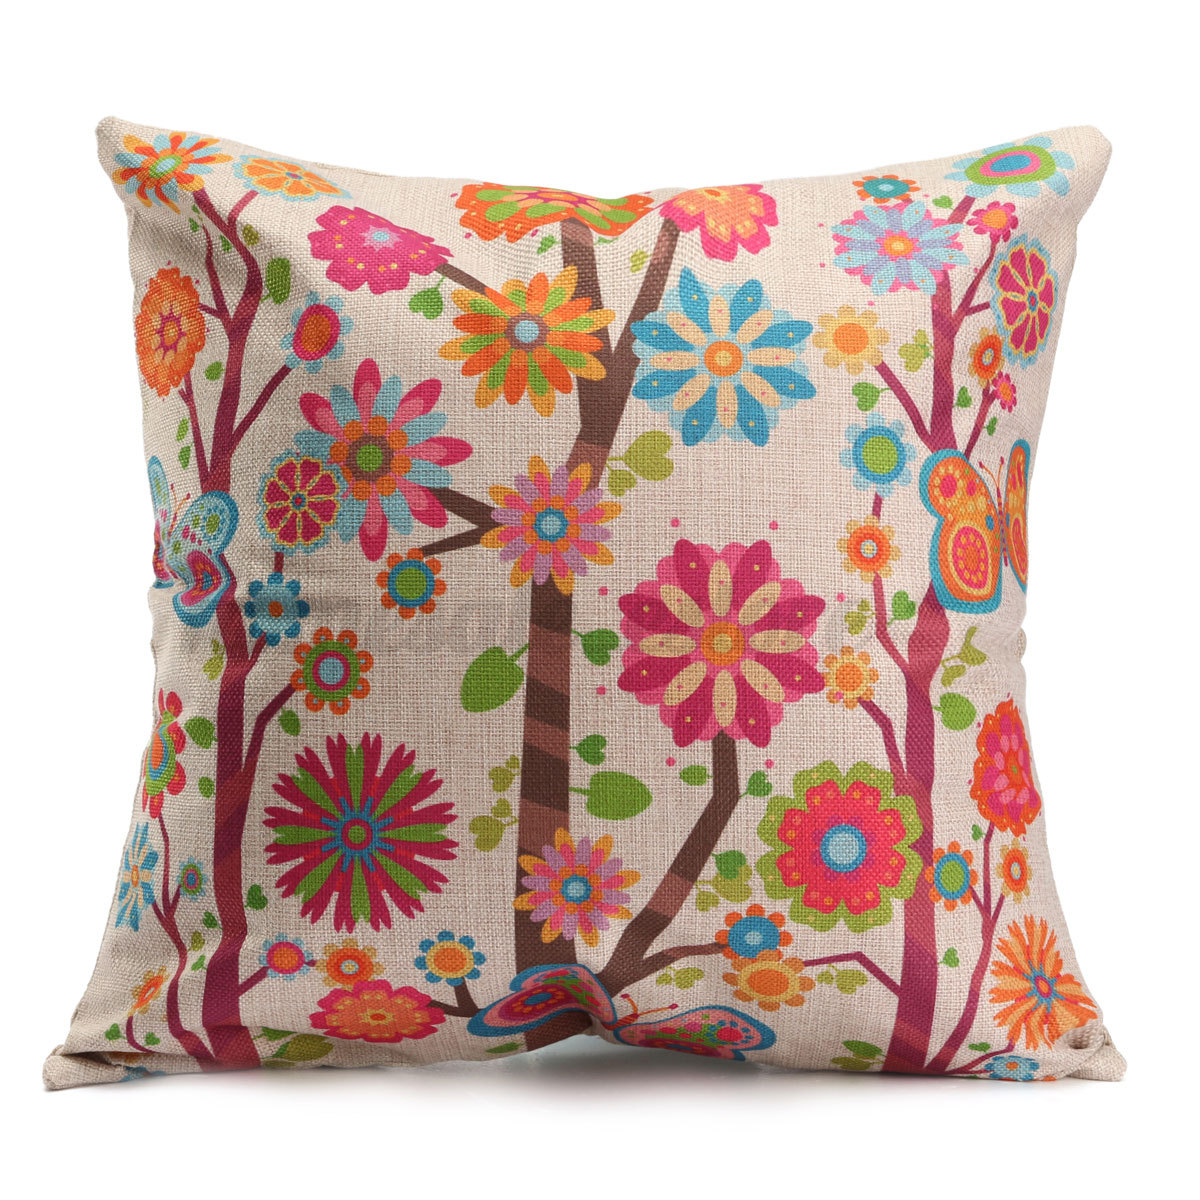 Decorative Bedroom Cushions : Vintage Simple Style Home Bedroom Decor Seat Back Pillow Case Cushion Cover